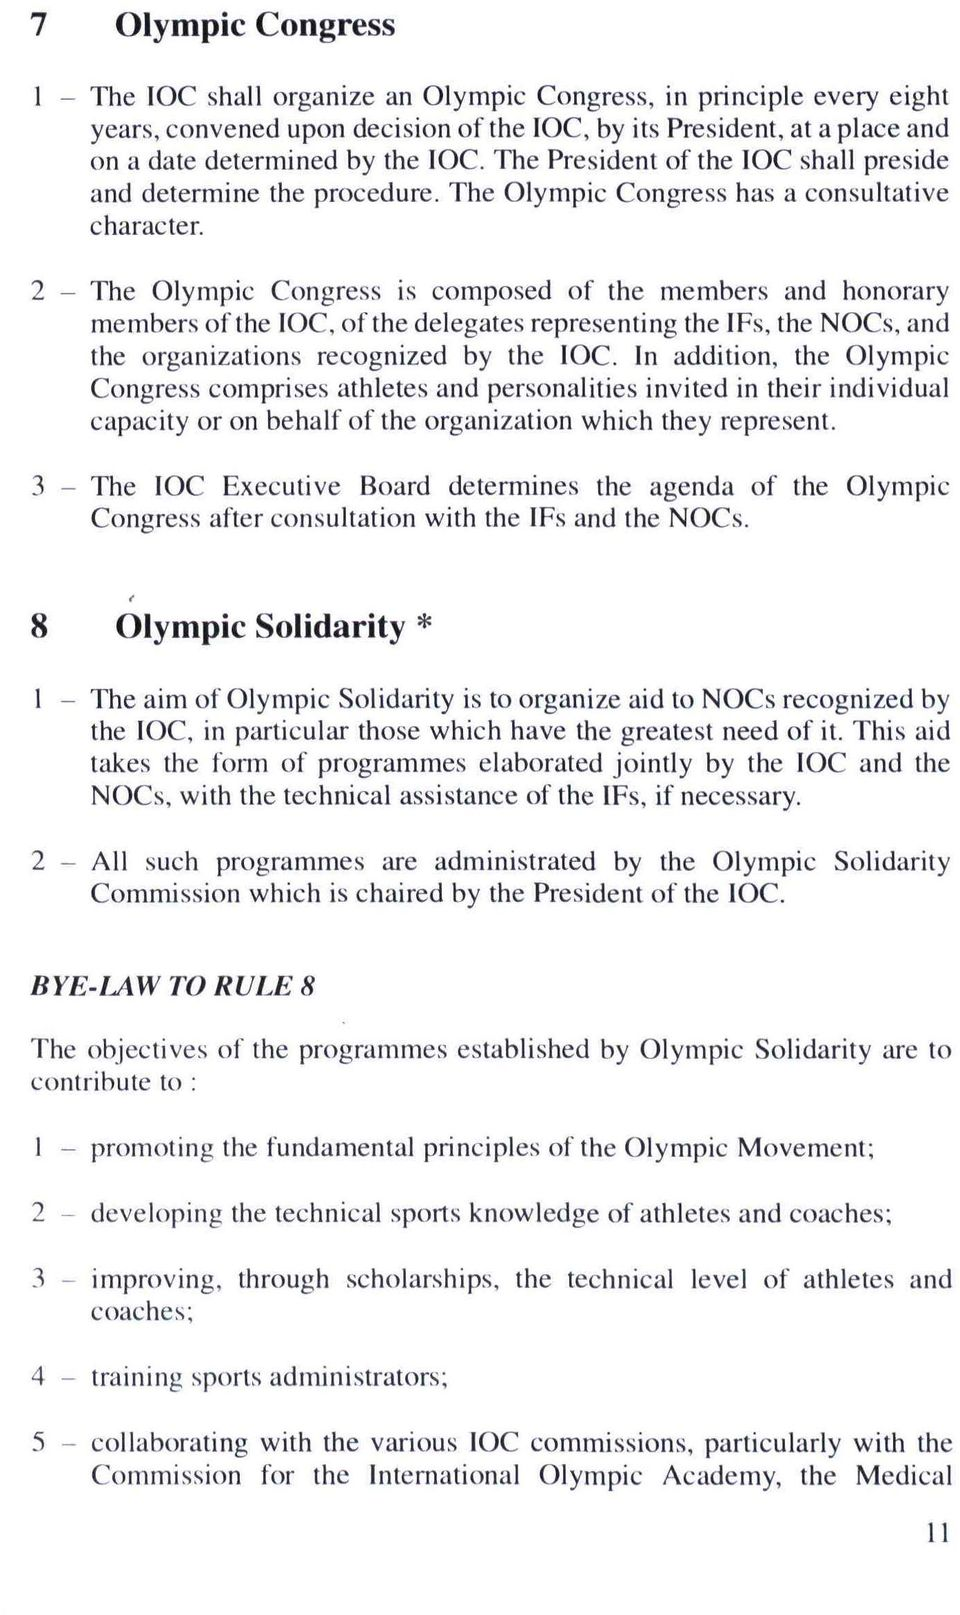 2 - The Olympic Congress is composed of the members and honorary members of the IOC, of the delegates representing the IFs, the NOCs, and the organizations recognized by the IOC.